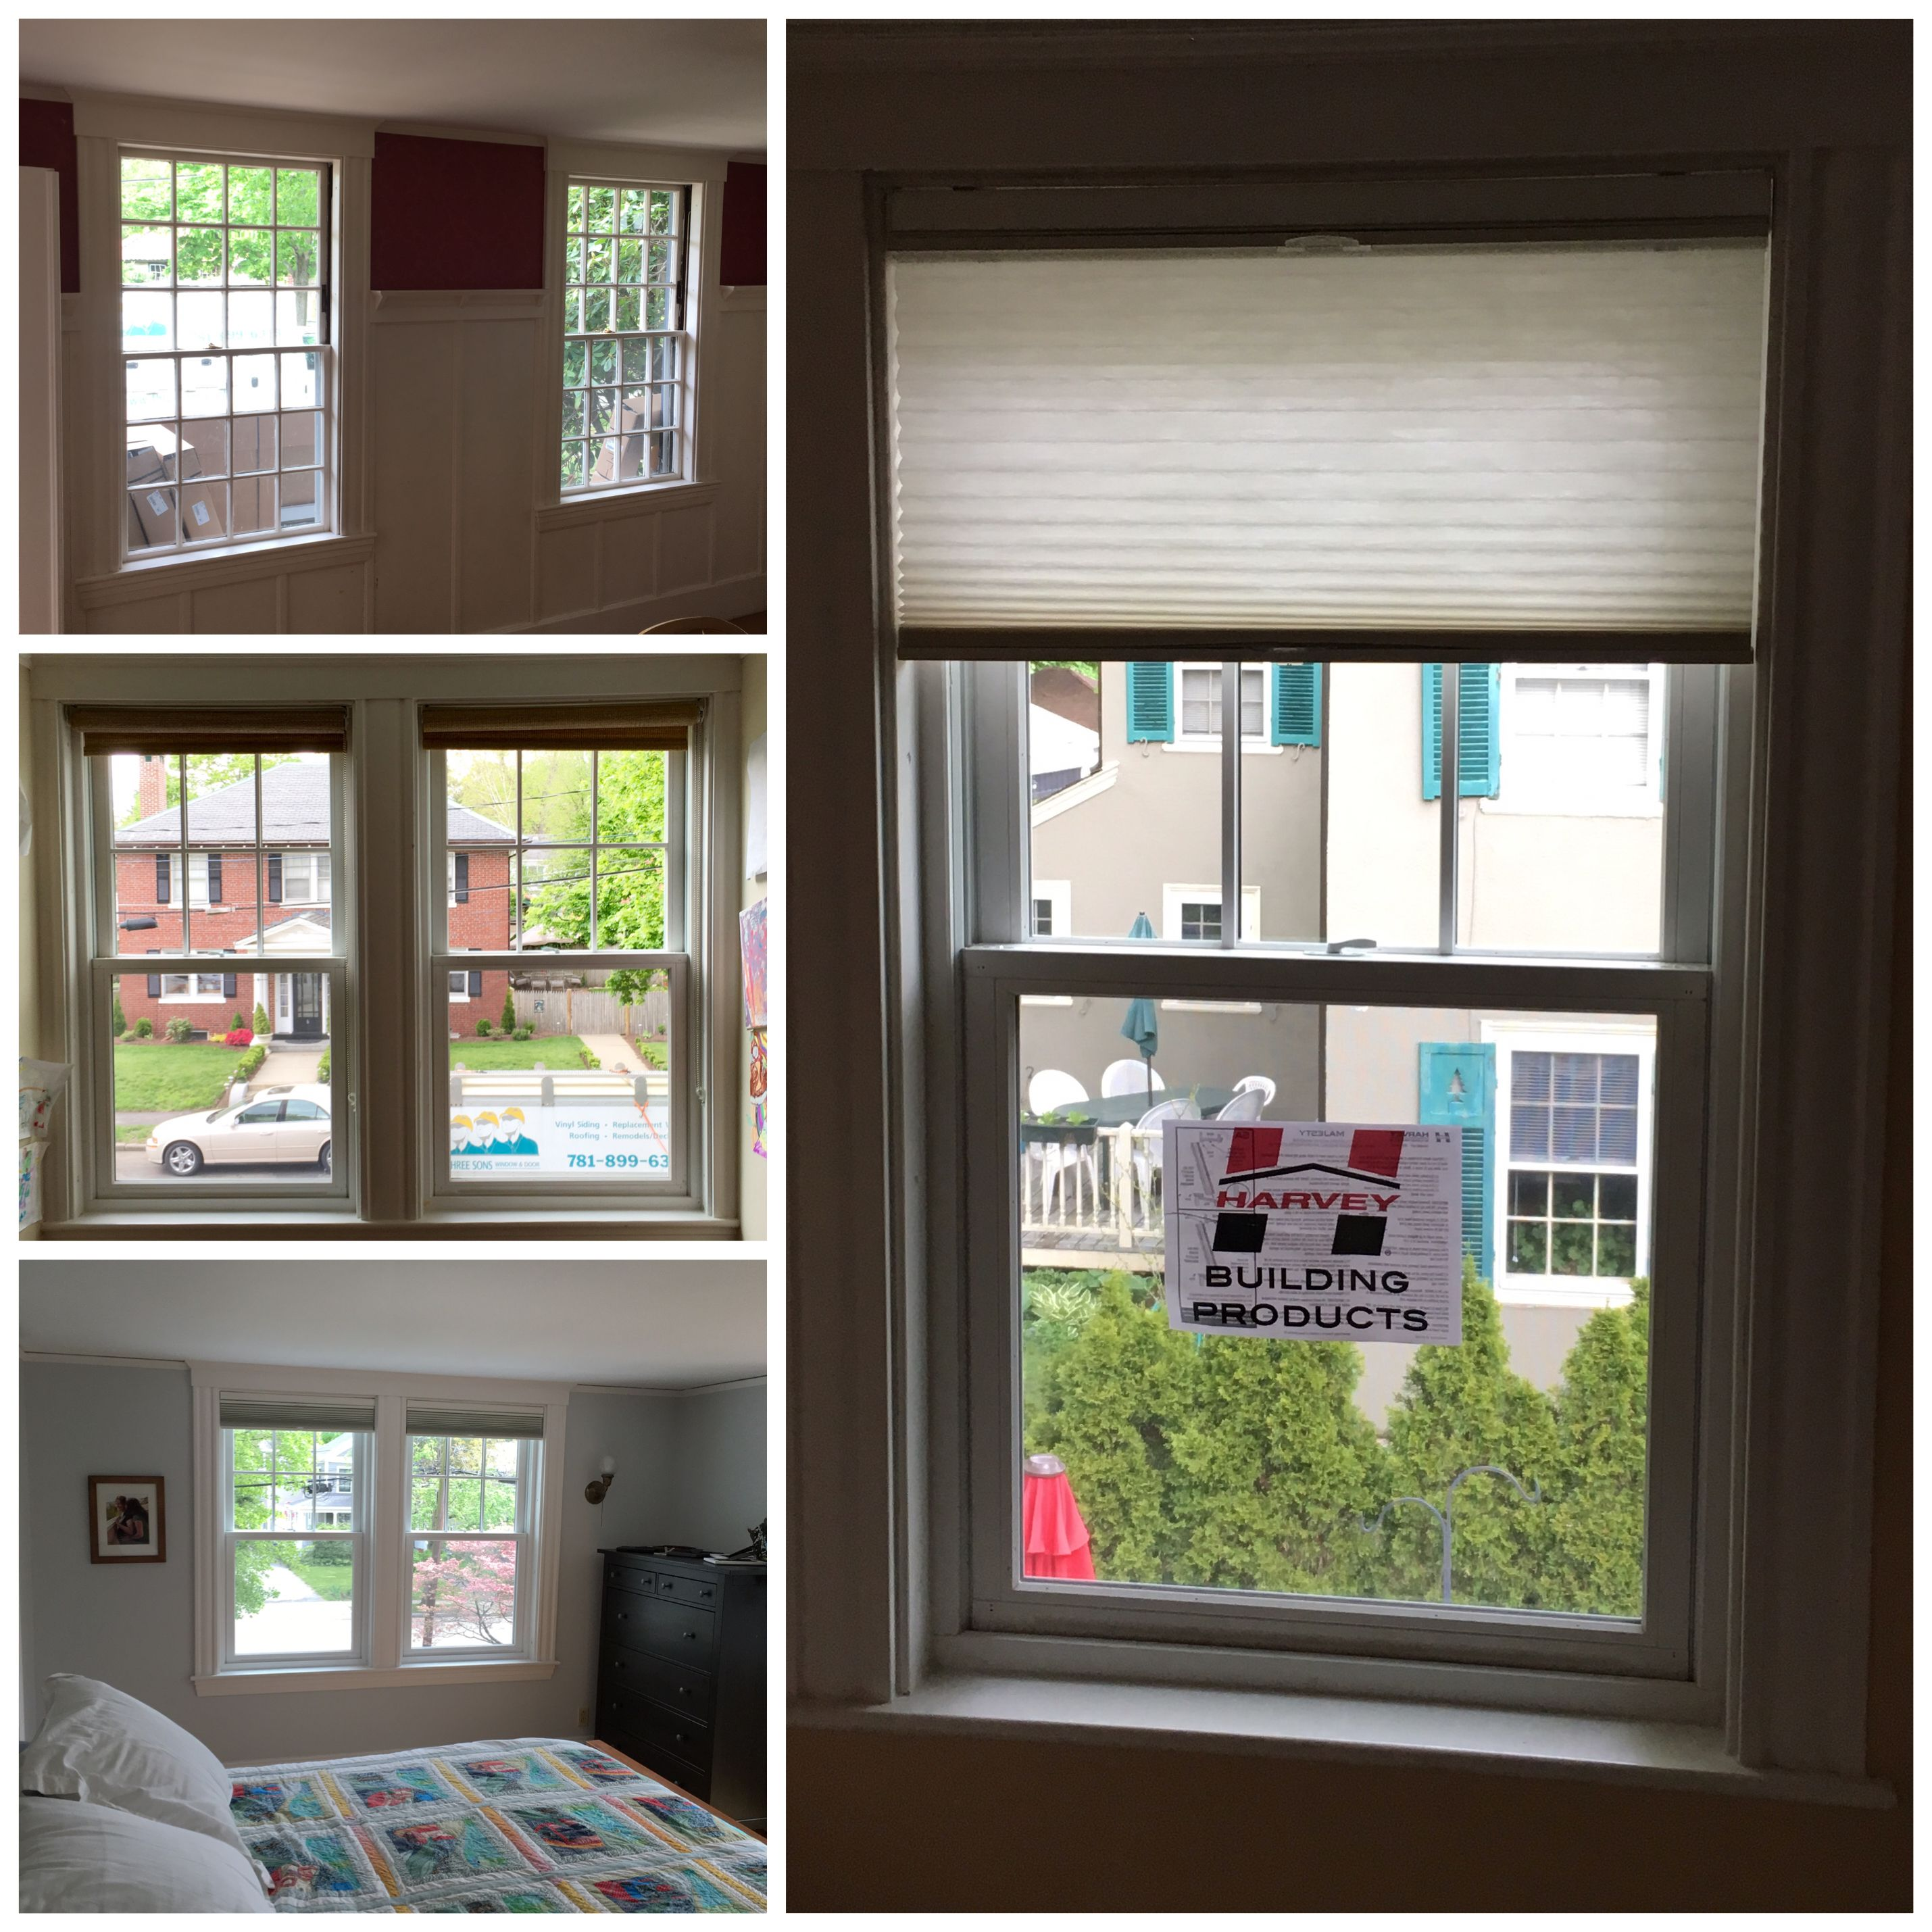 Harvey BP Replacement windows WIndows Replacementwindows